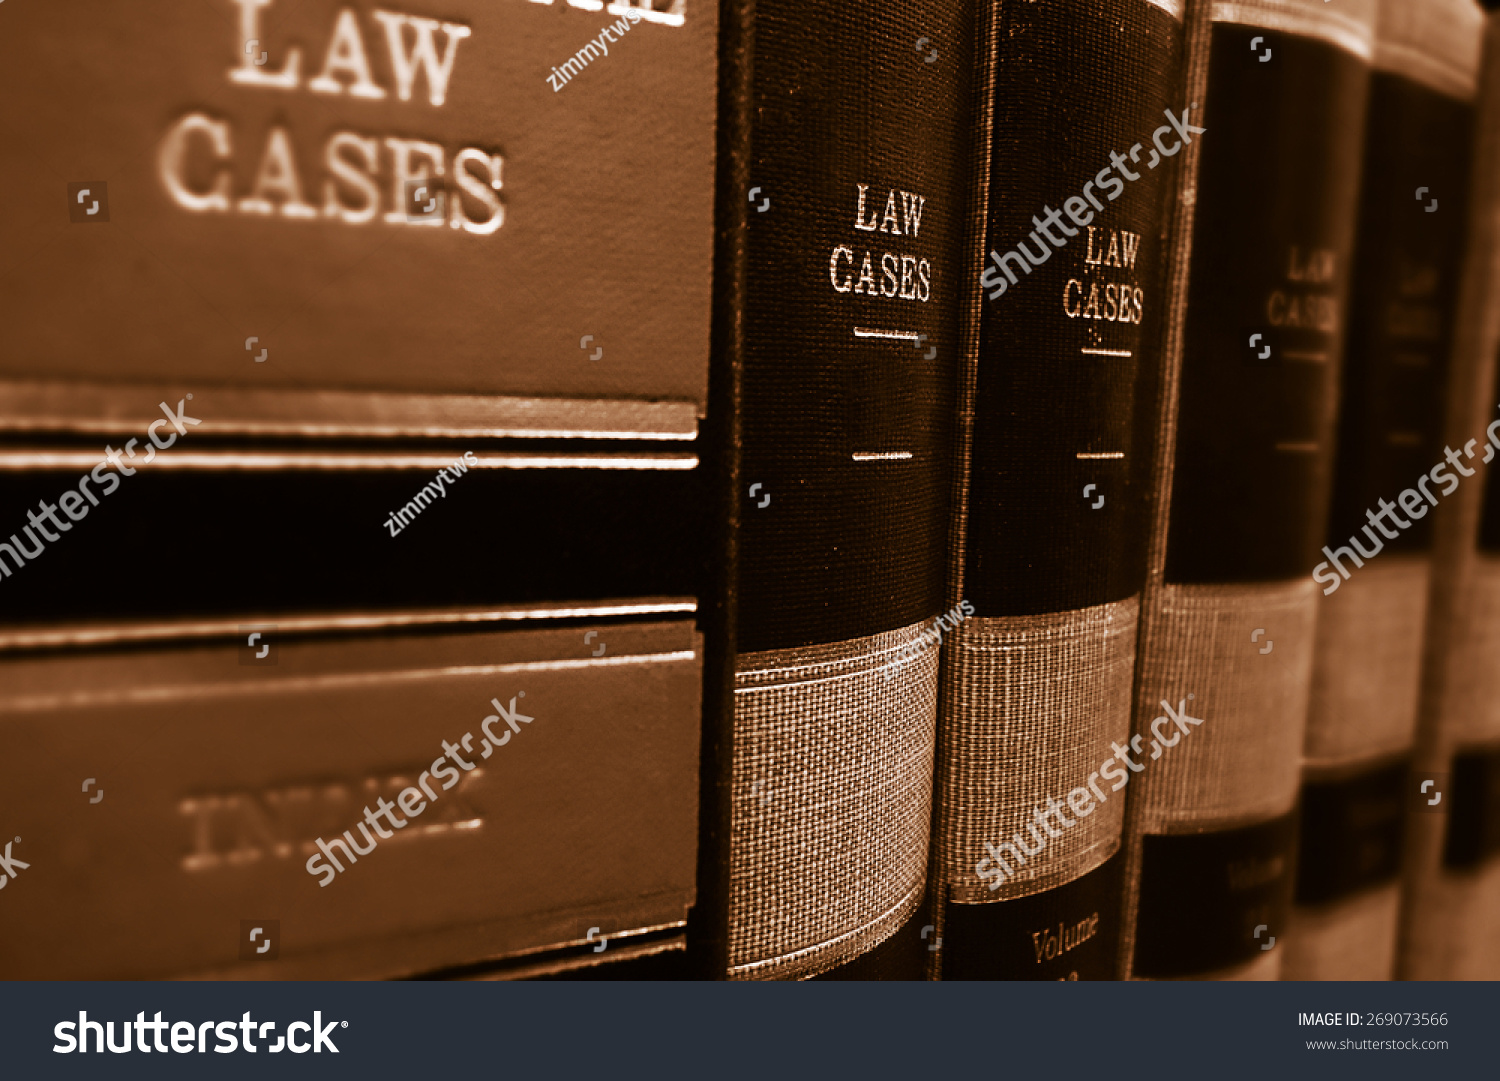 law and cases In legal systems based on common law, a precedent, or authority, is a principle or rule established in a previous legal case that is either binding on or persuasive.